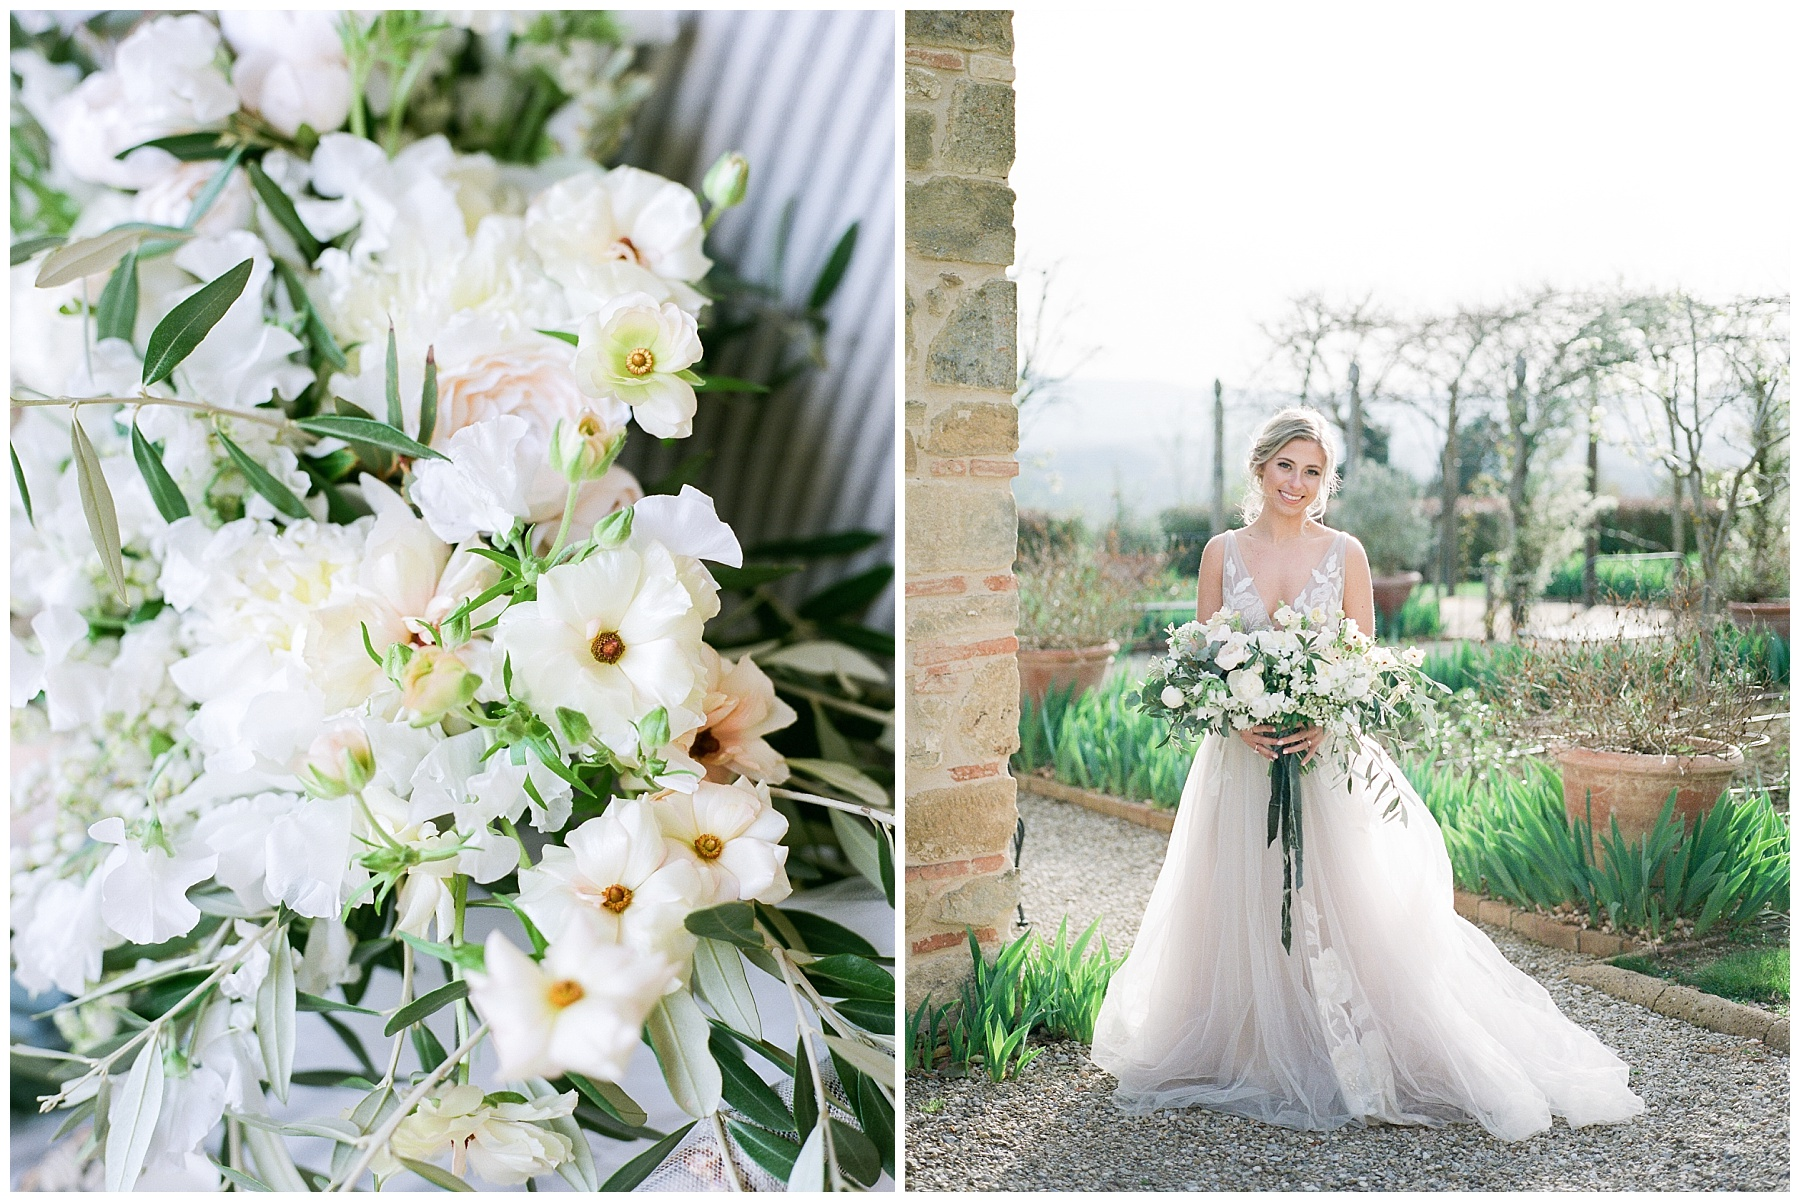 All White Destination Wedding in the Hills of Tuscany Italy at Estate Borgo Petrognano by Kelsi Kliethermes Photography_0030.jpg